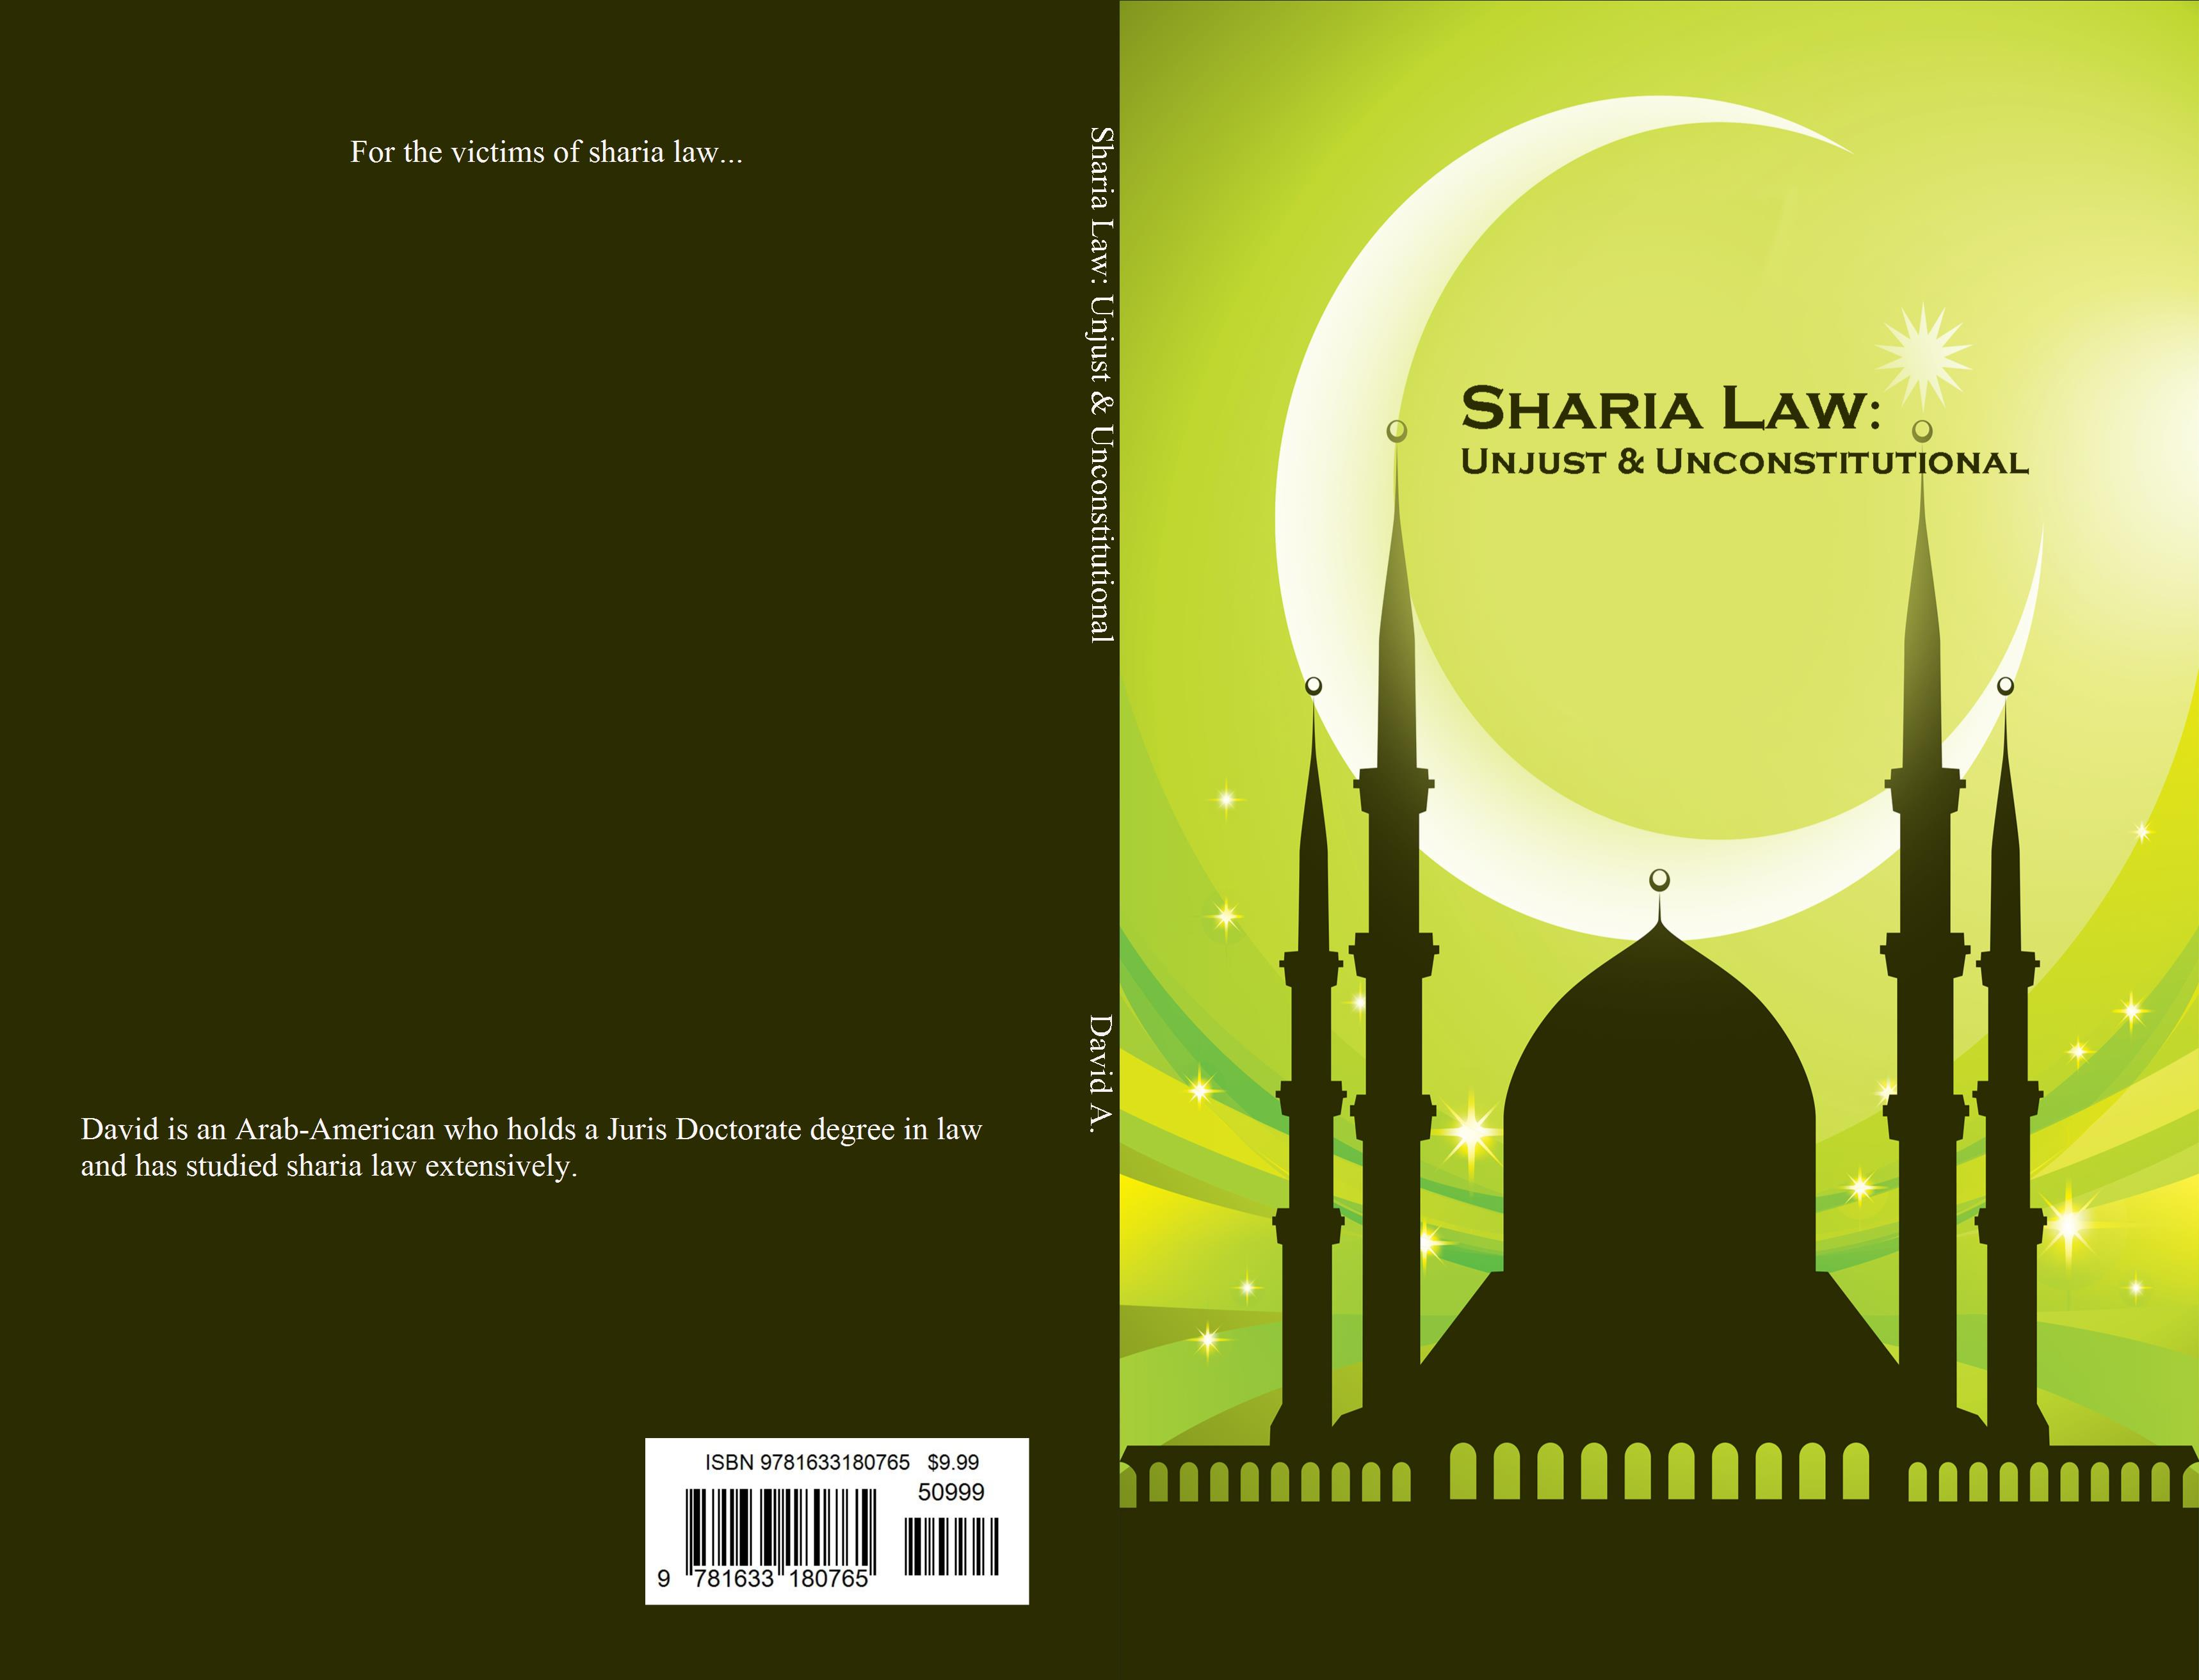 Sharia Law: Unjust & Unconstitutional cover image